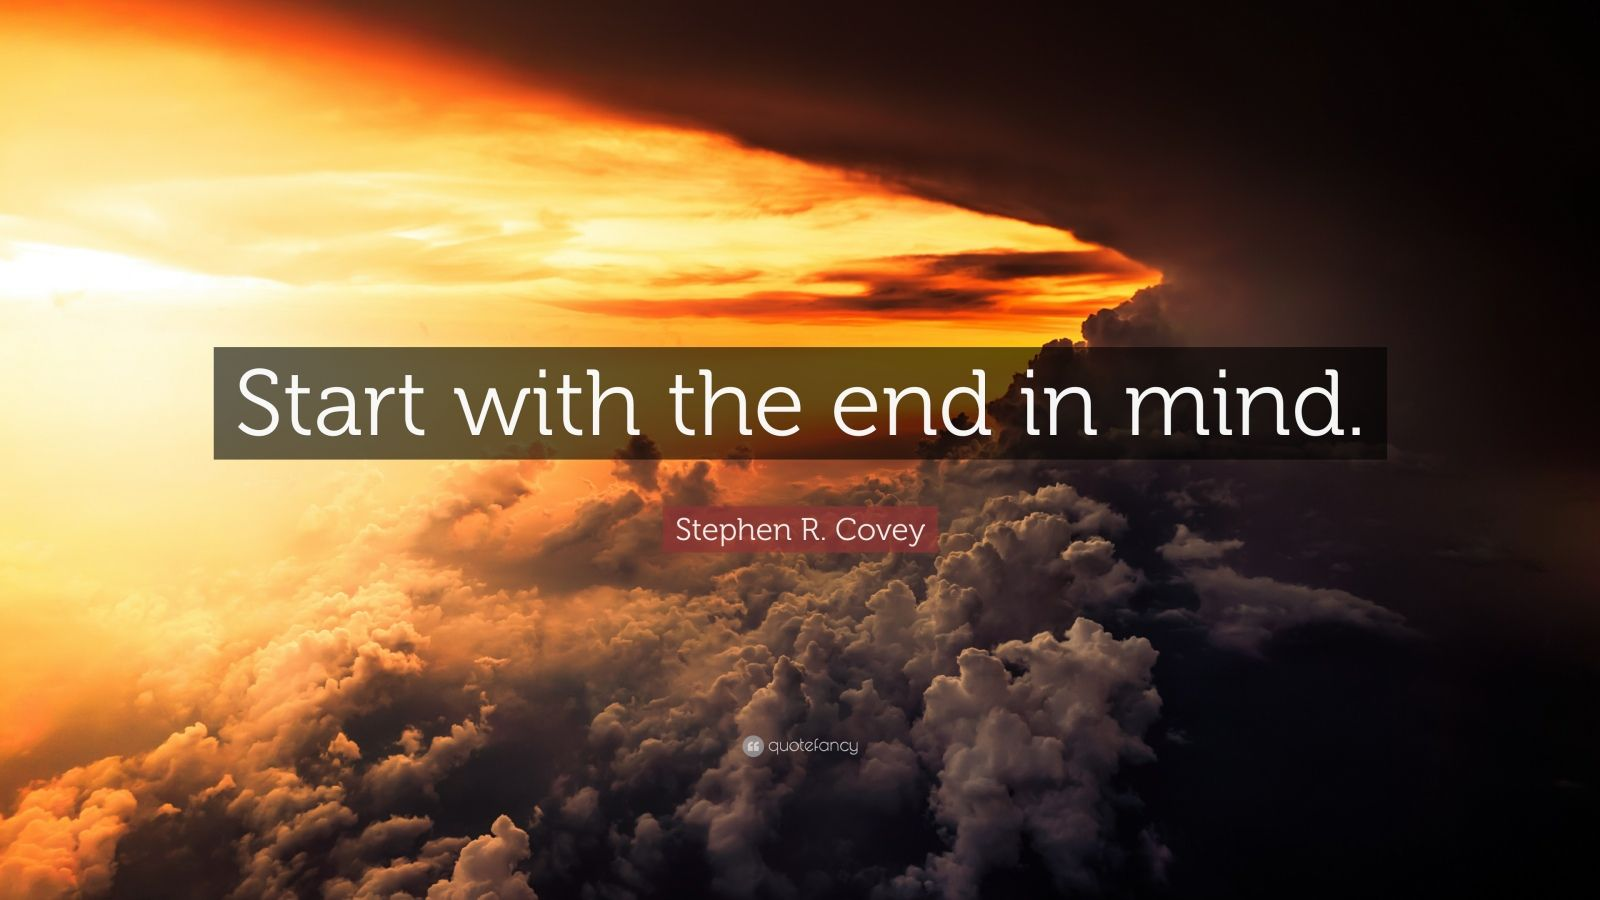 Beautiful Inspirational Quotes Wallpapers Stephen R Covey Quote Start With The End In Mind 12